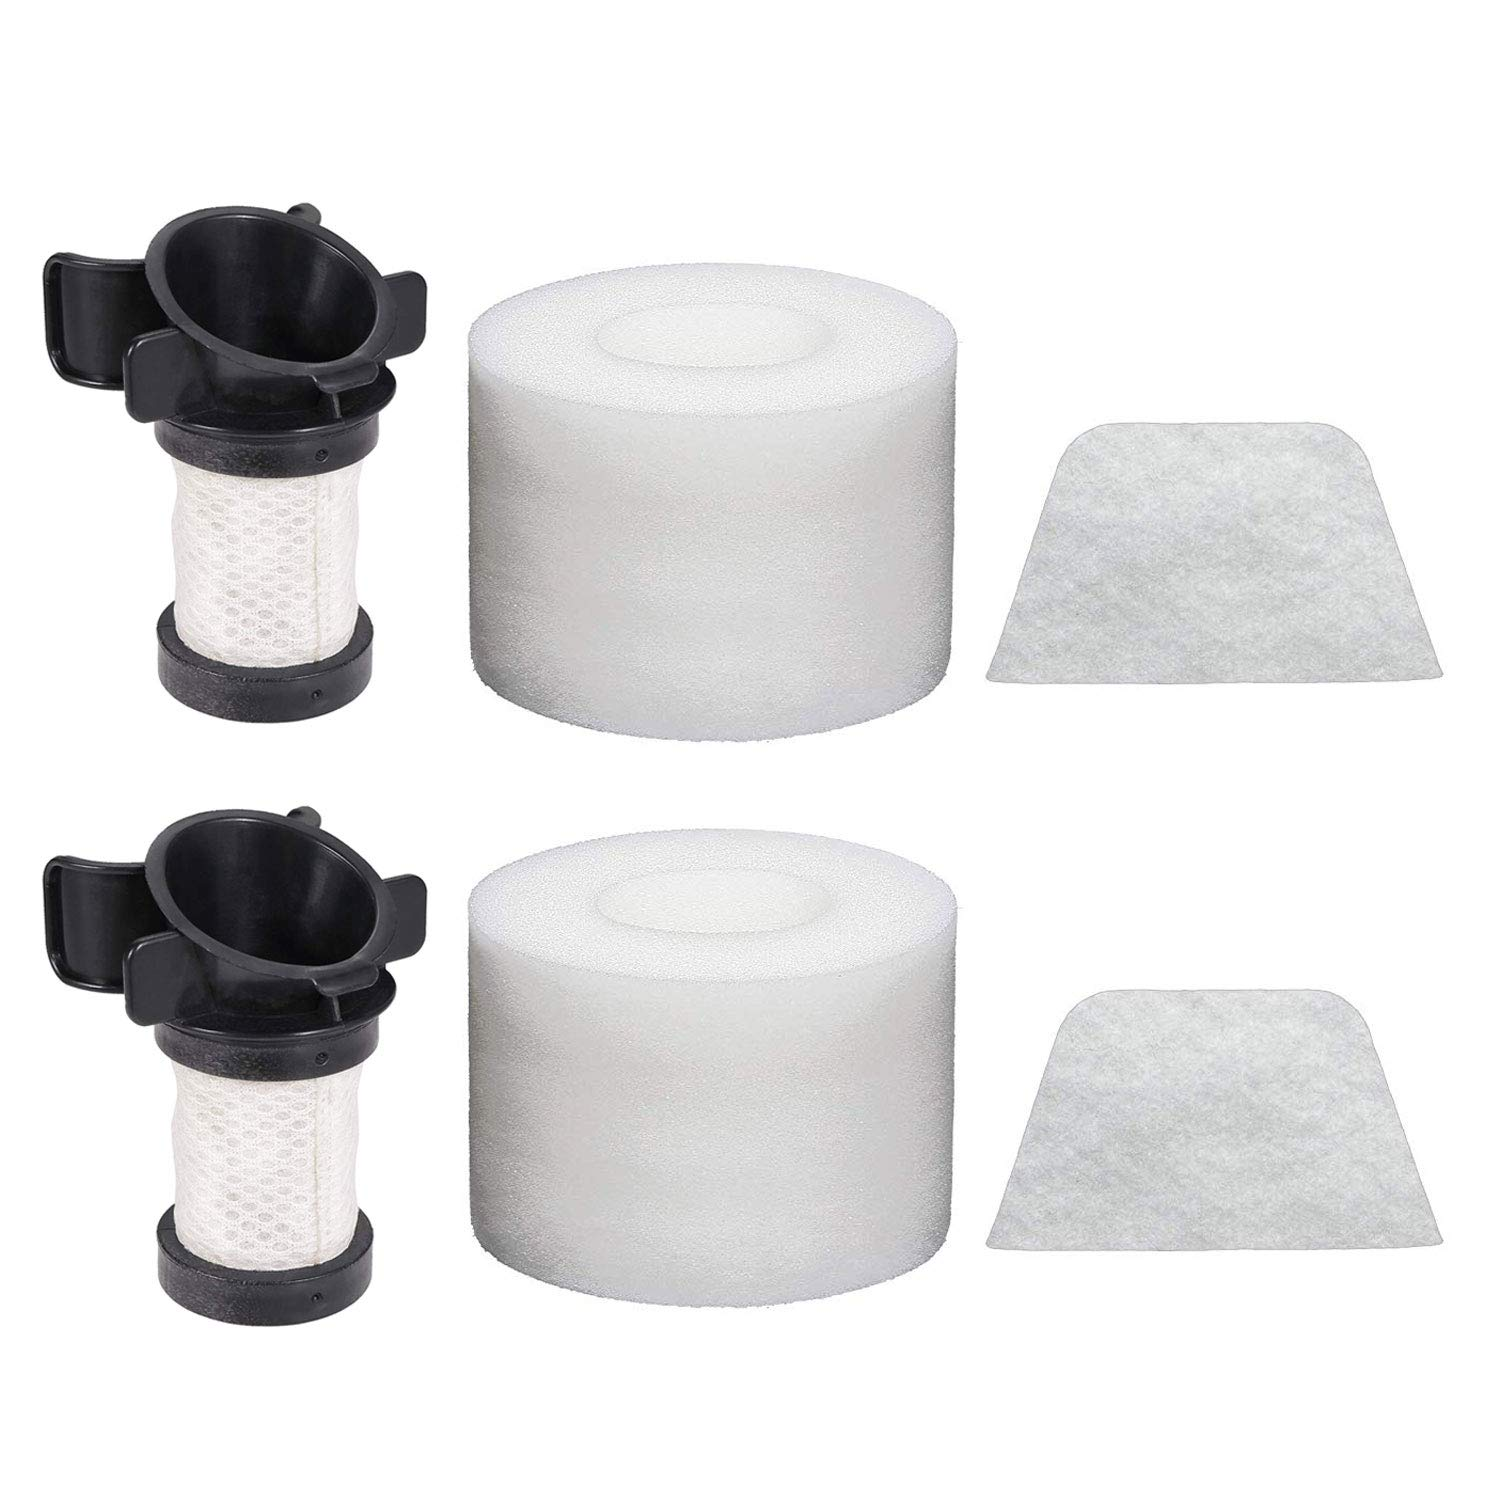 Extolife Replacement Filters for Shark ION Flex DuoClean X30 X40 F60 F80 IF200 IF201 IF202 IF205 IF251 IF252 IF281 IF282 IF285 UF280 IC205 IR70 IR100 IR101, 2Foam 2Felt 2Hepa, XPREMF100